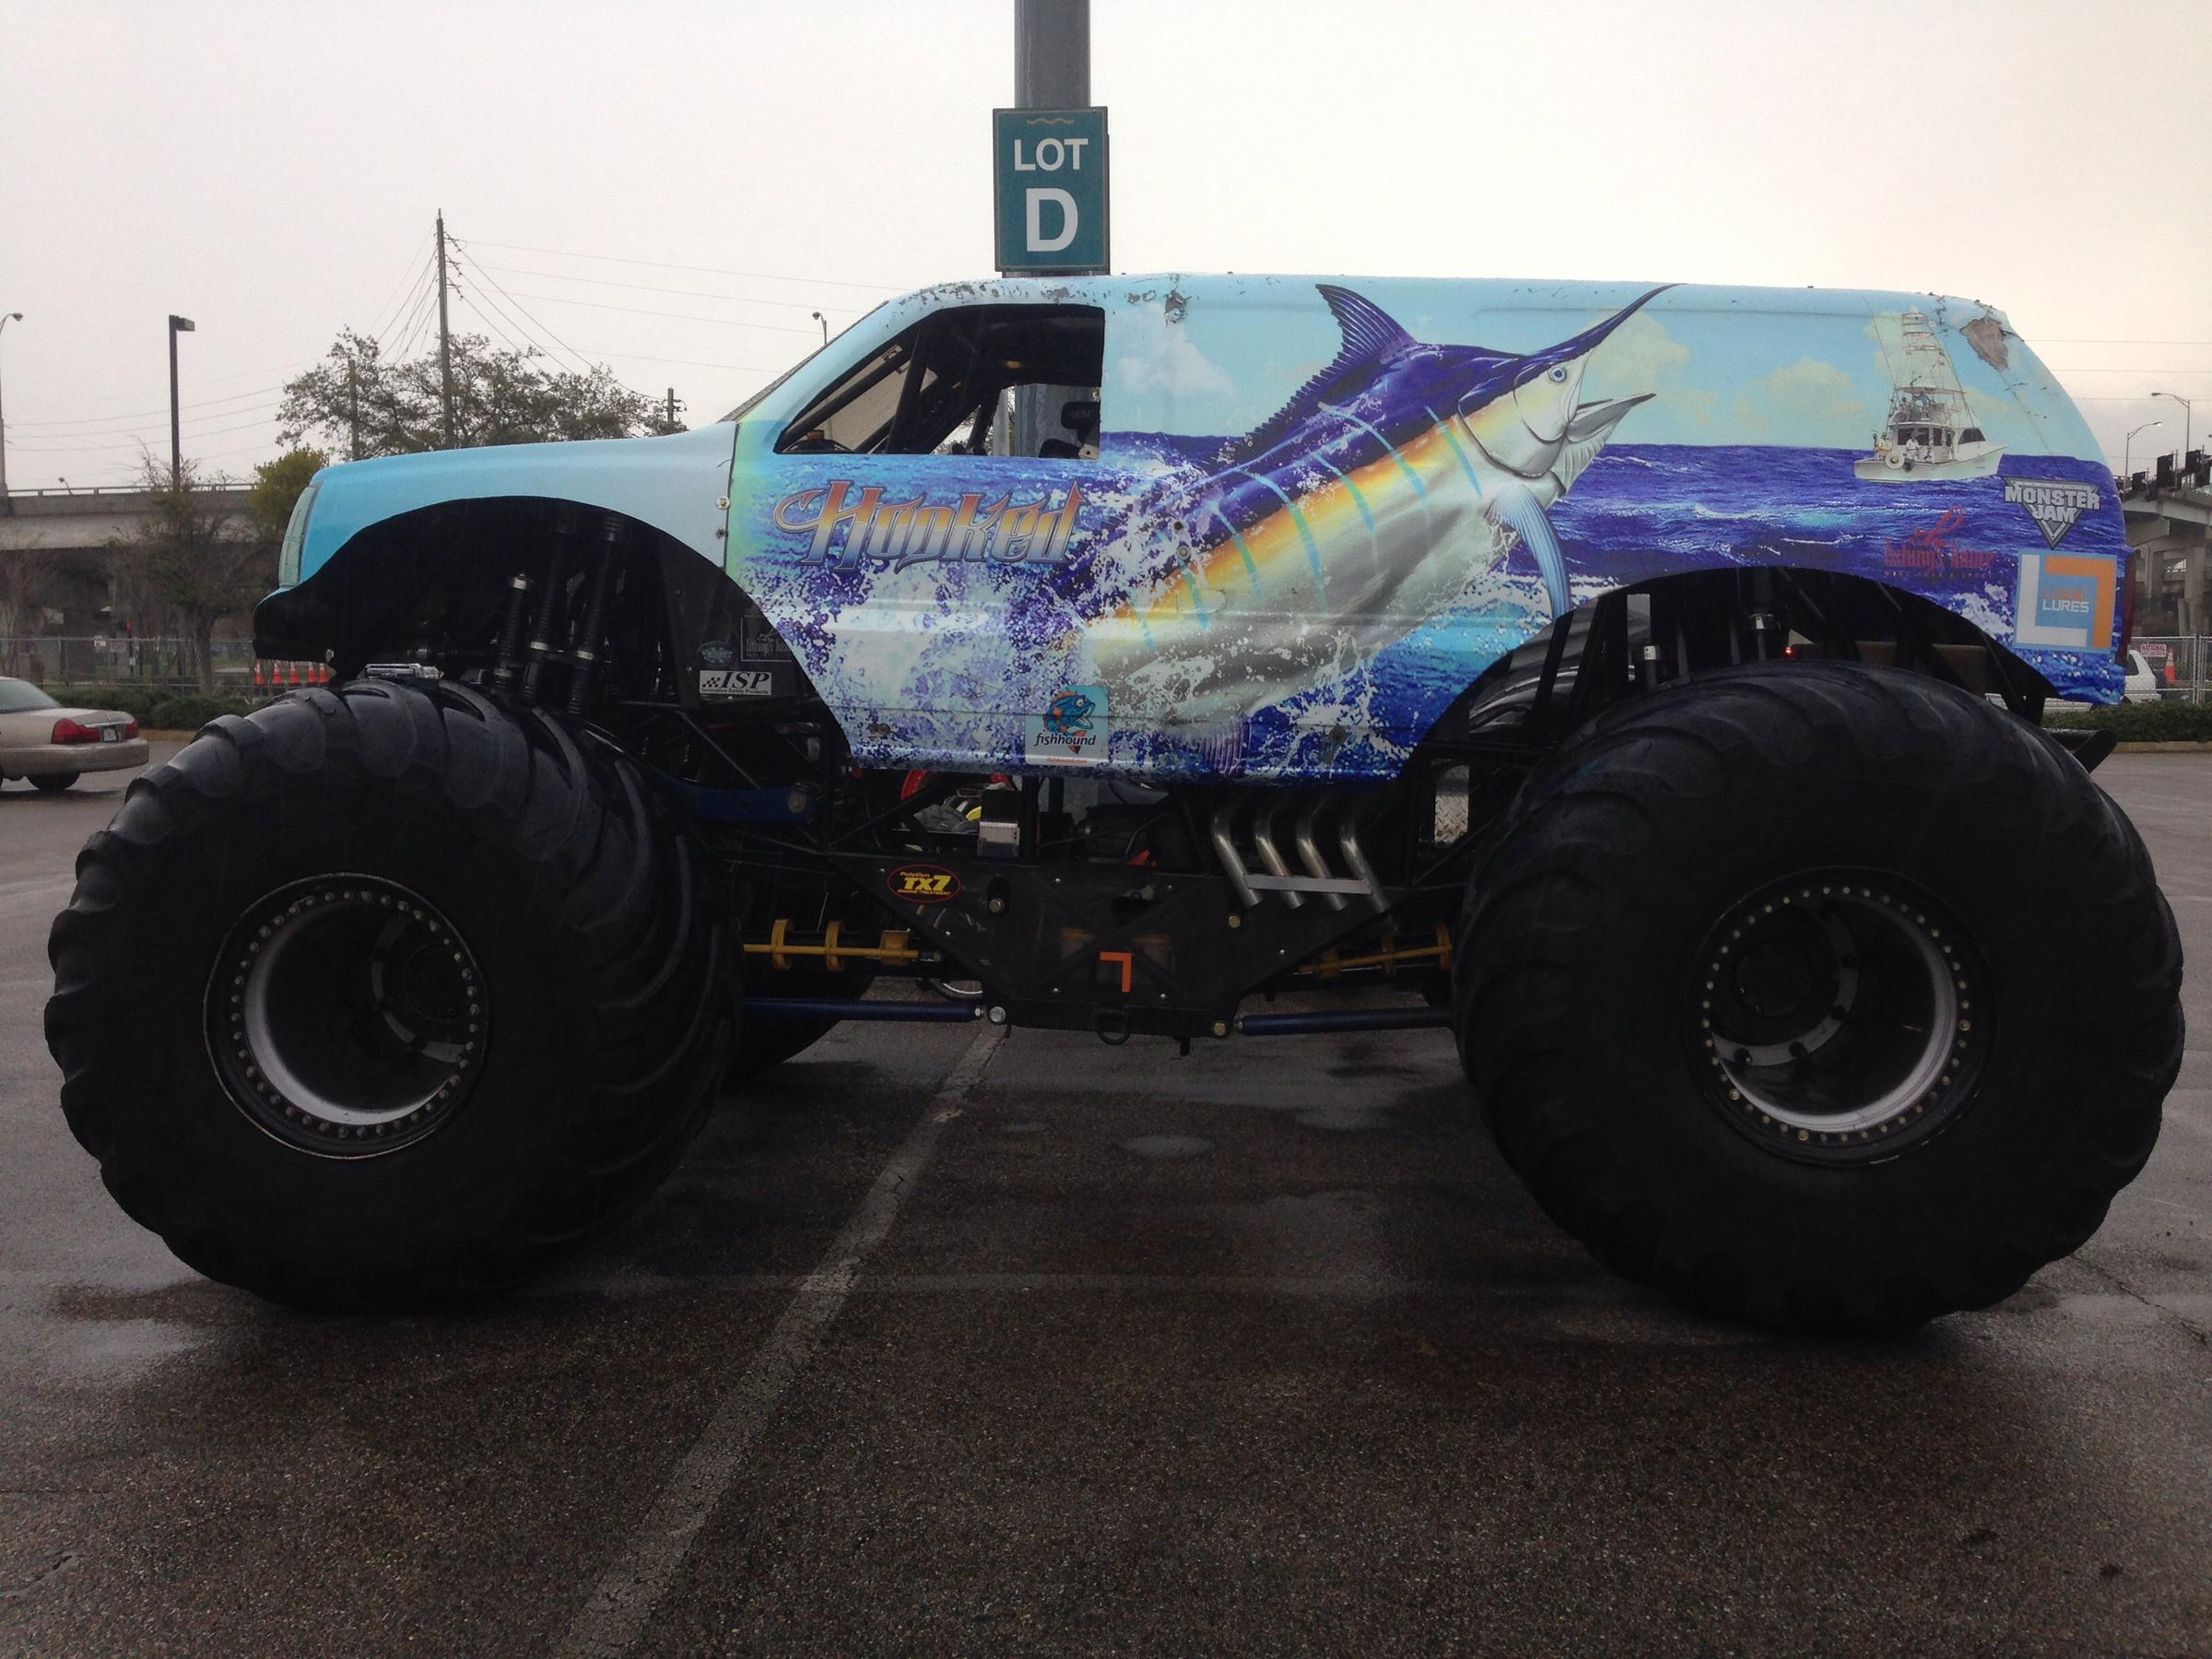 Smash your way to fun with this enormous Monster Truck Combo that towers over 18ft high! Rev your engines this unique combo features a large bounce area, climb and slide, and bright colorful artwork.